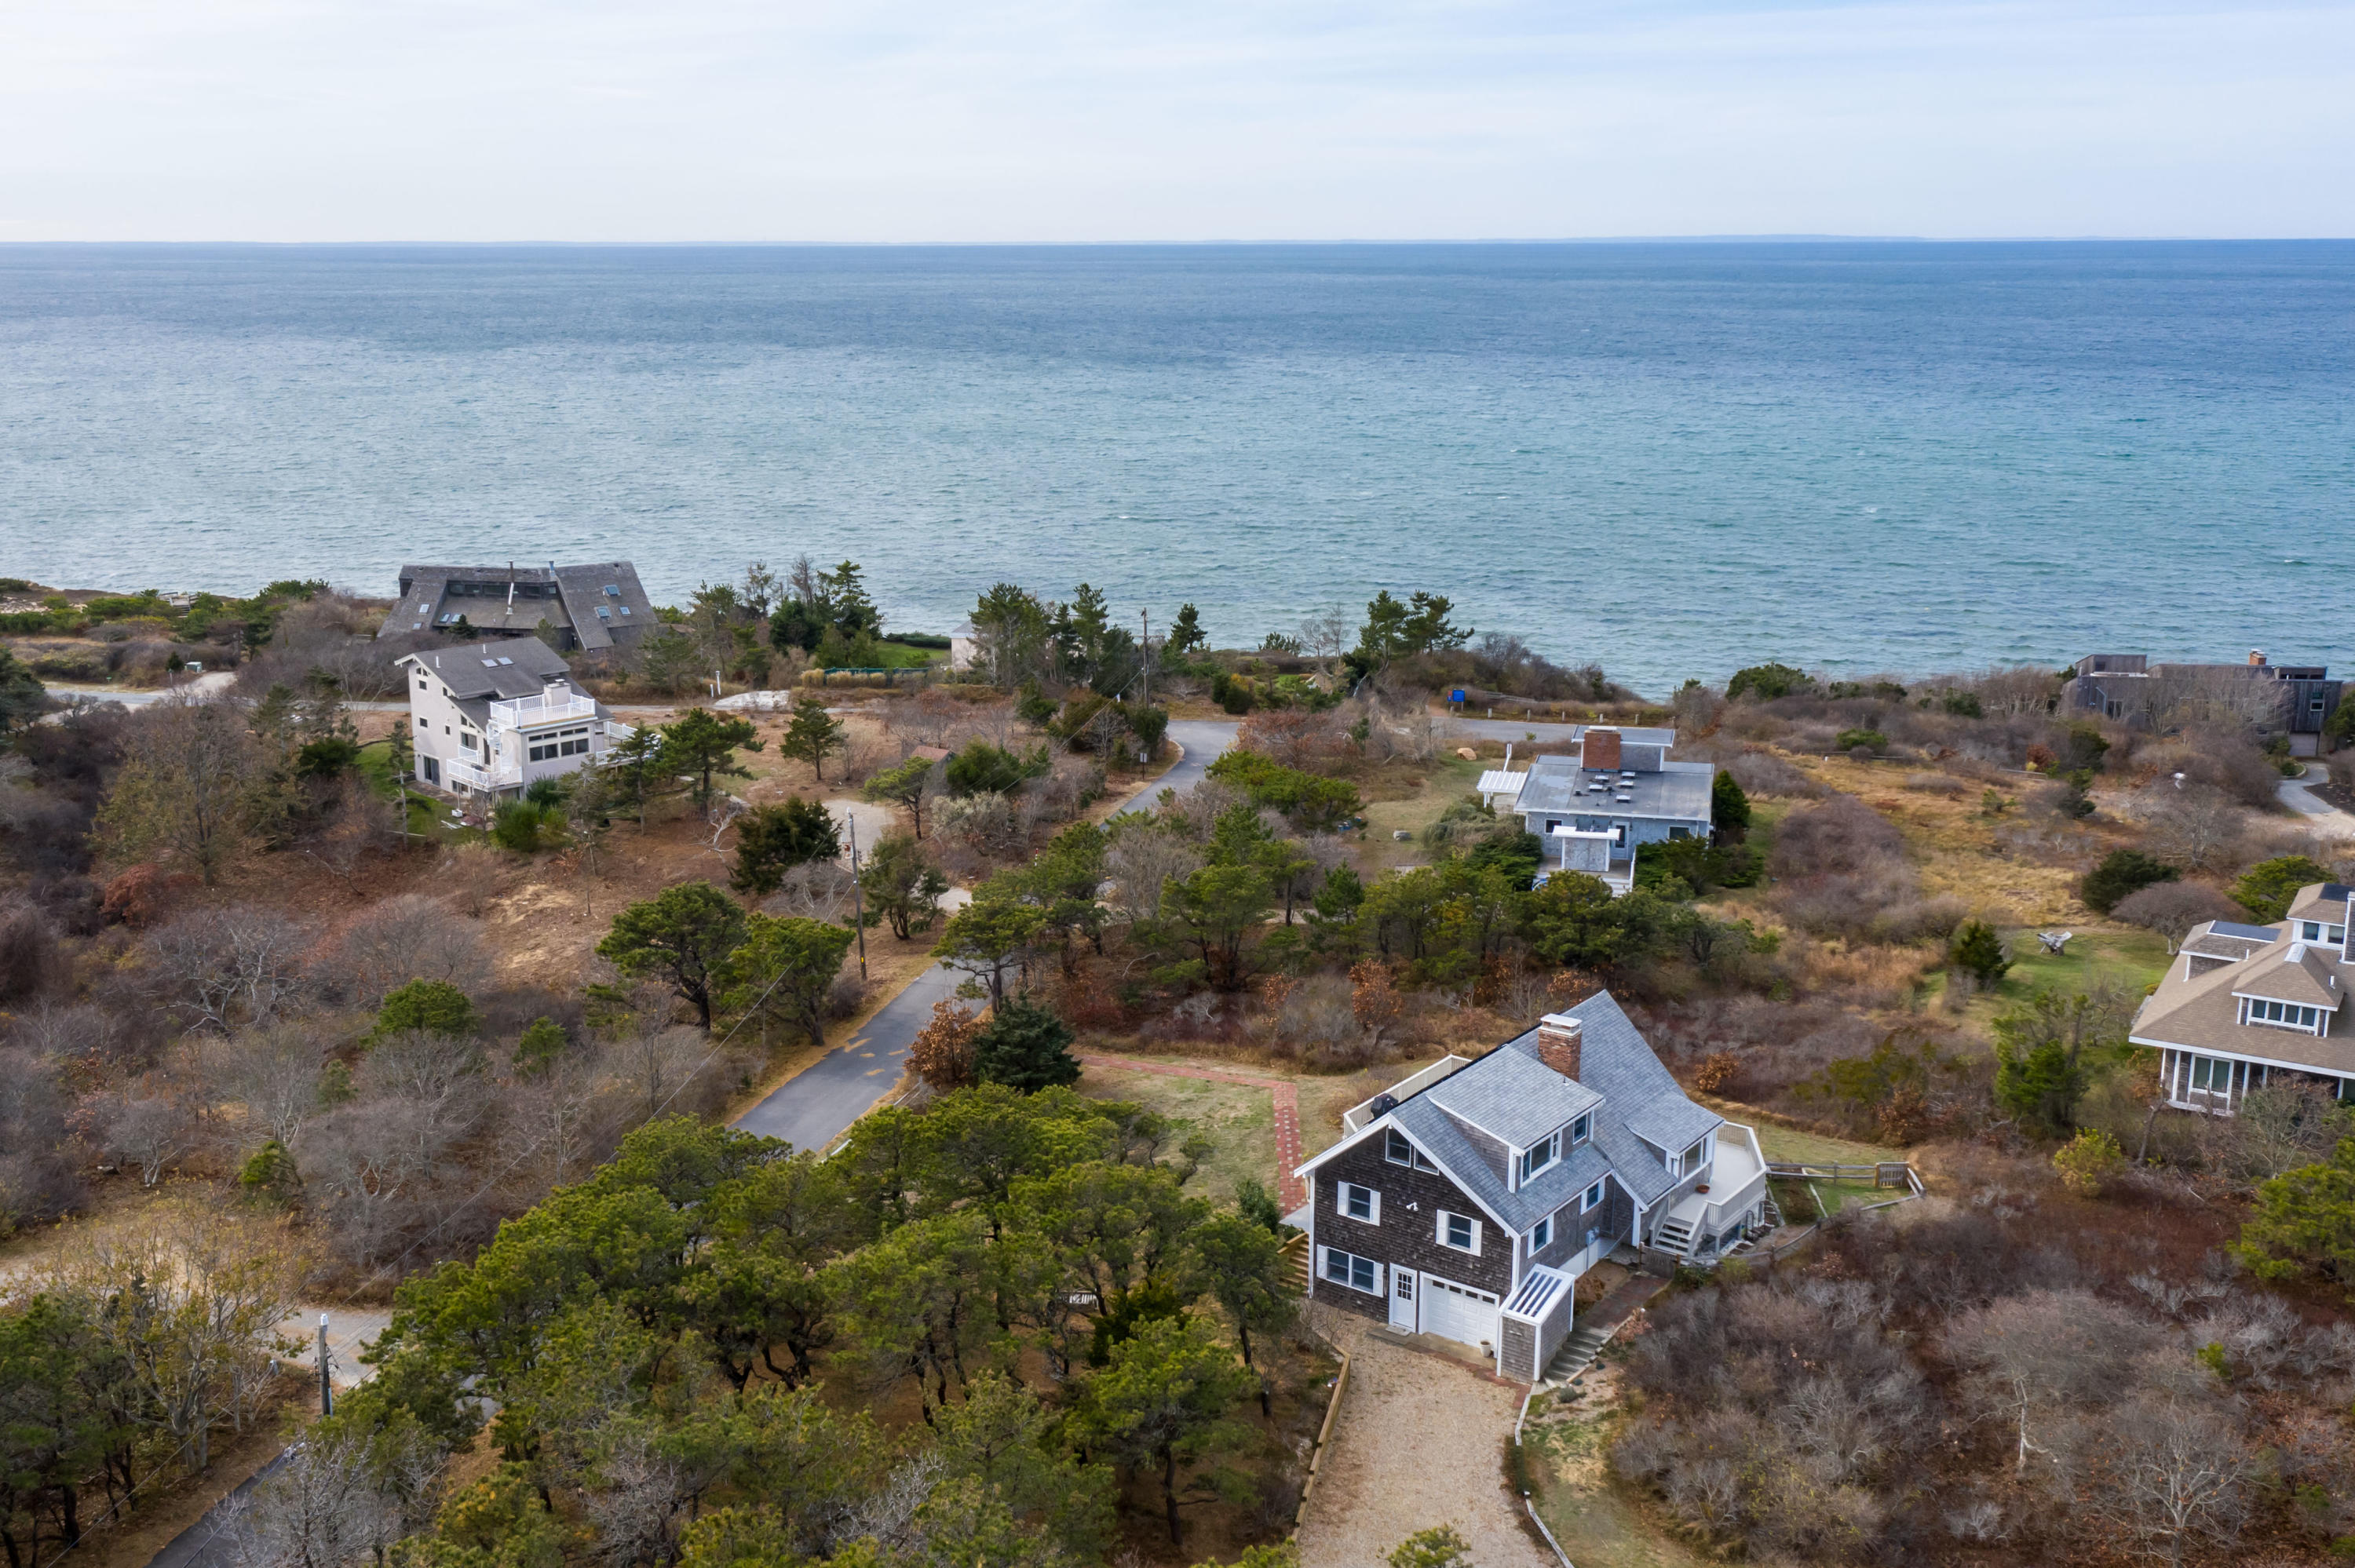 41 Fishermans Road, Truro MA, 02666 details